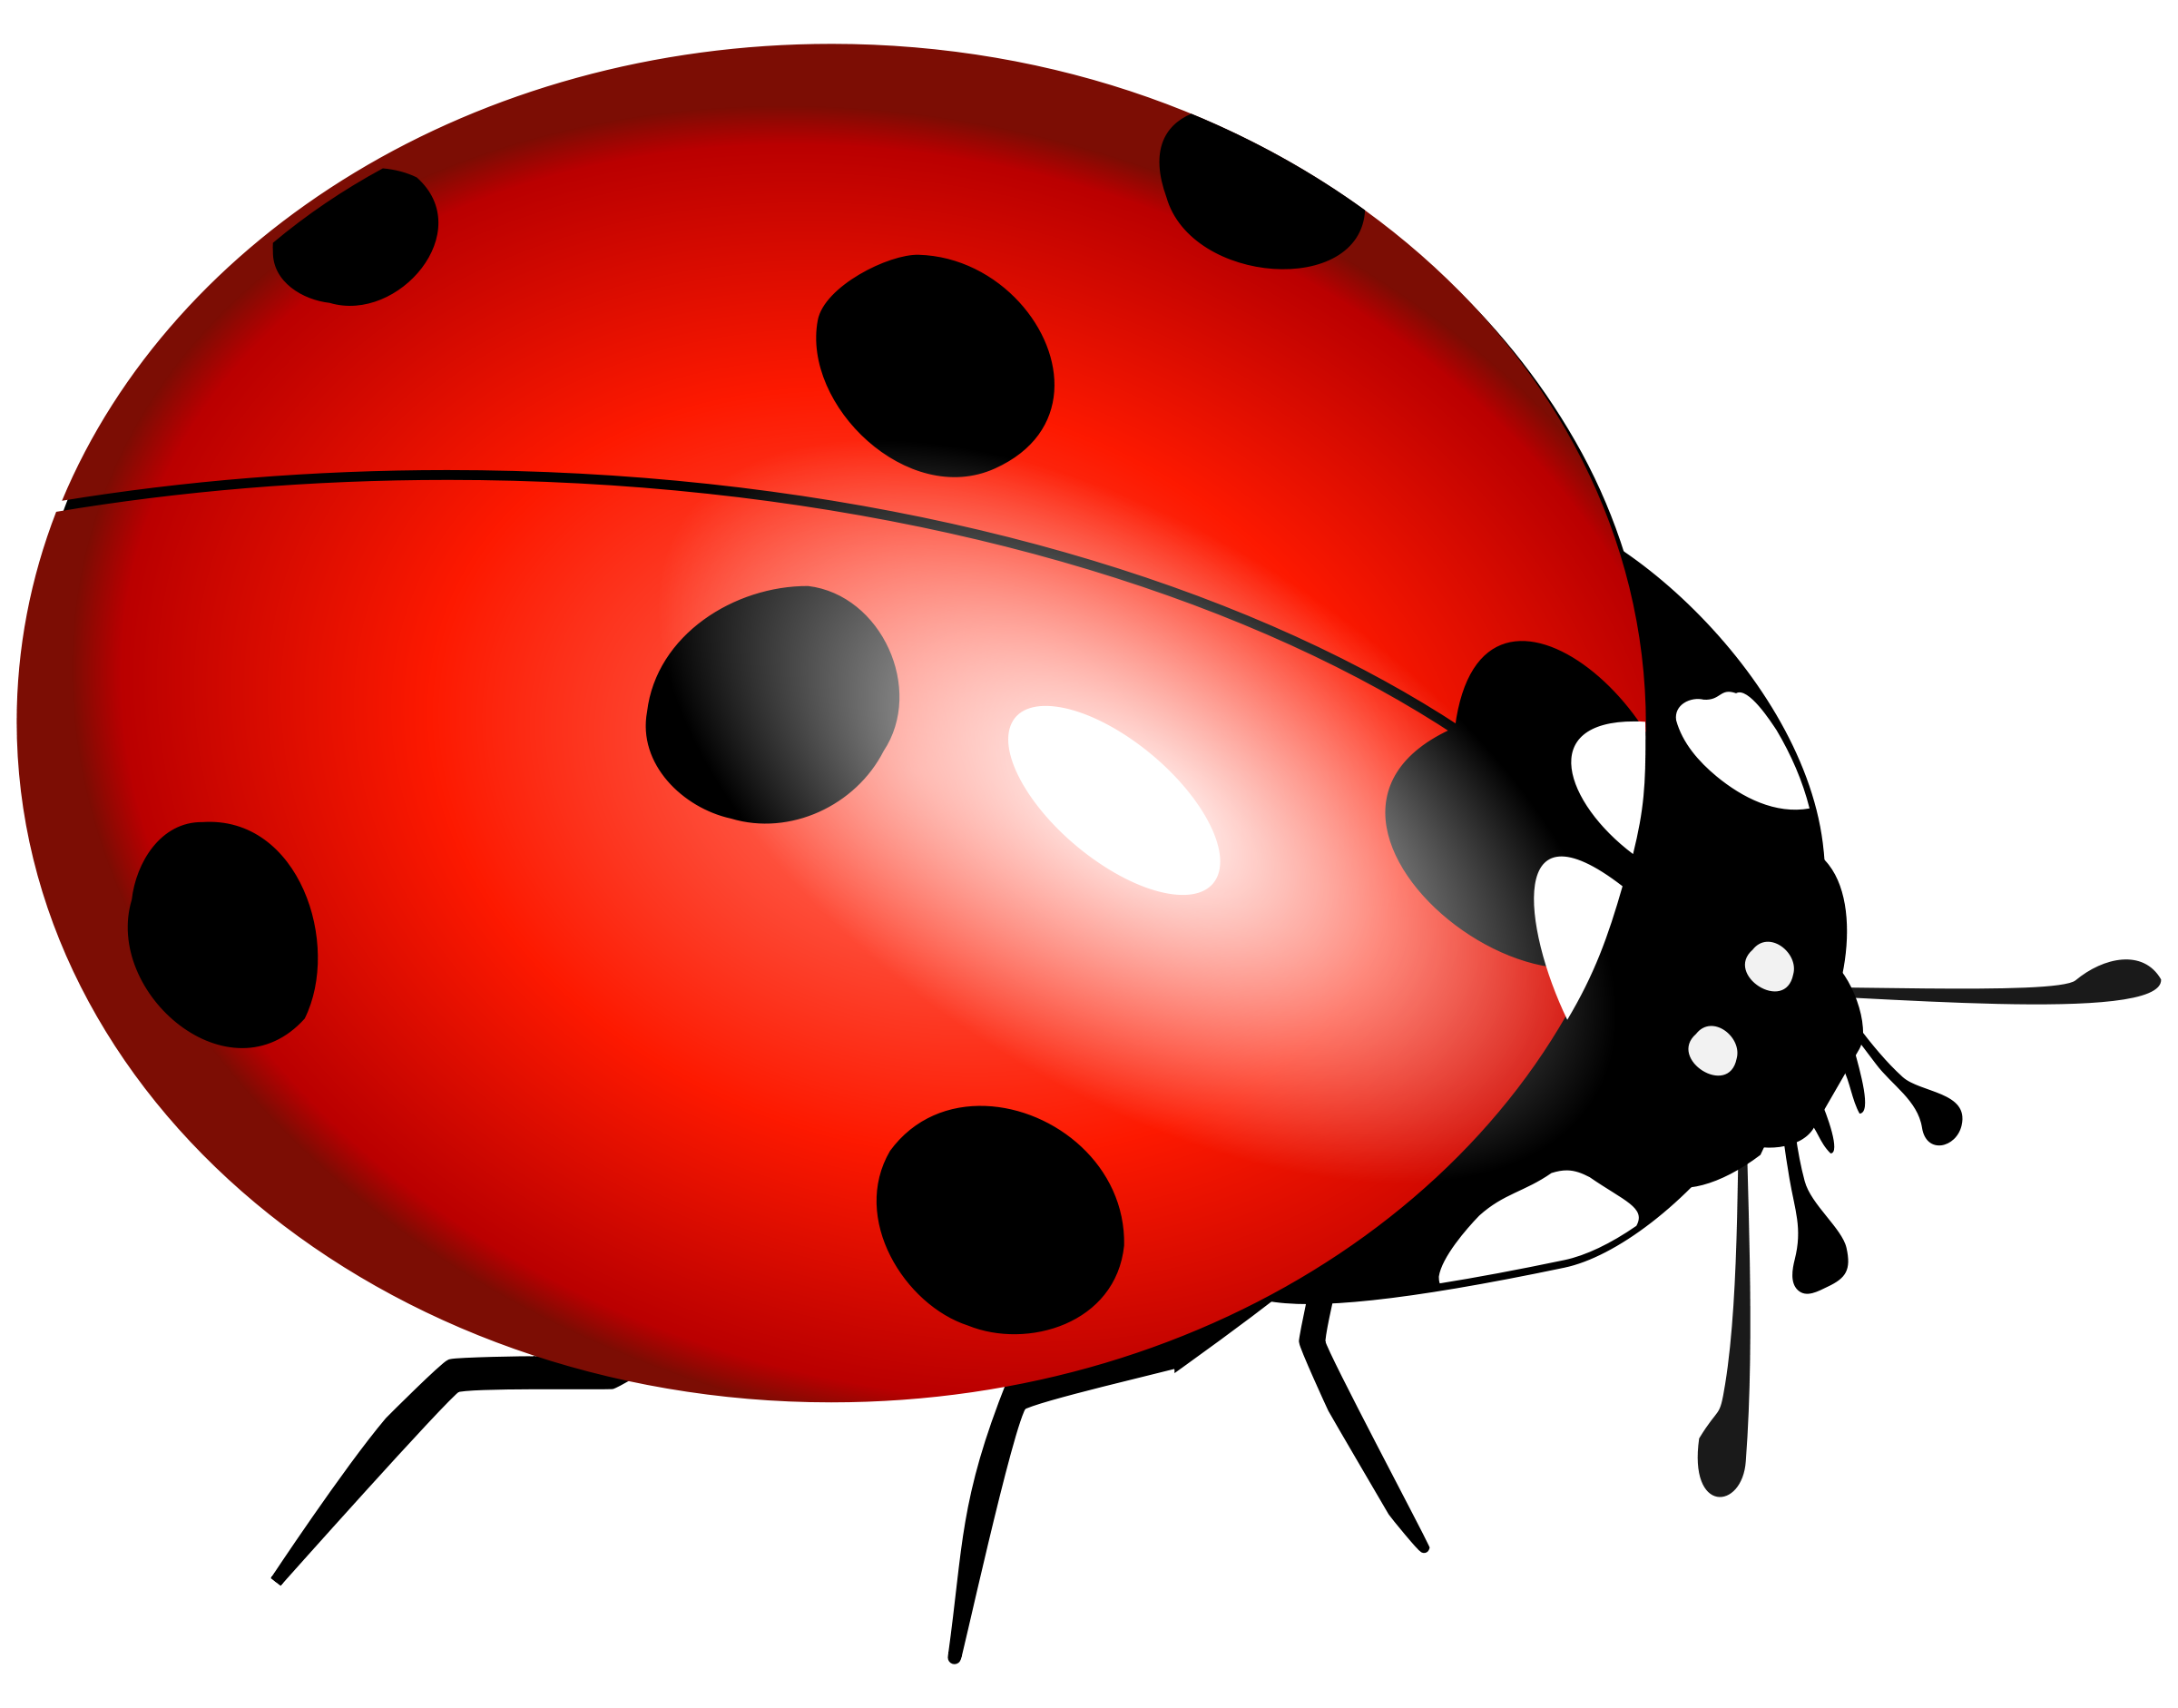 Ladybug download lady bug clipart clipartmonk free clip art images